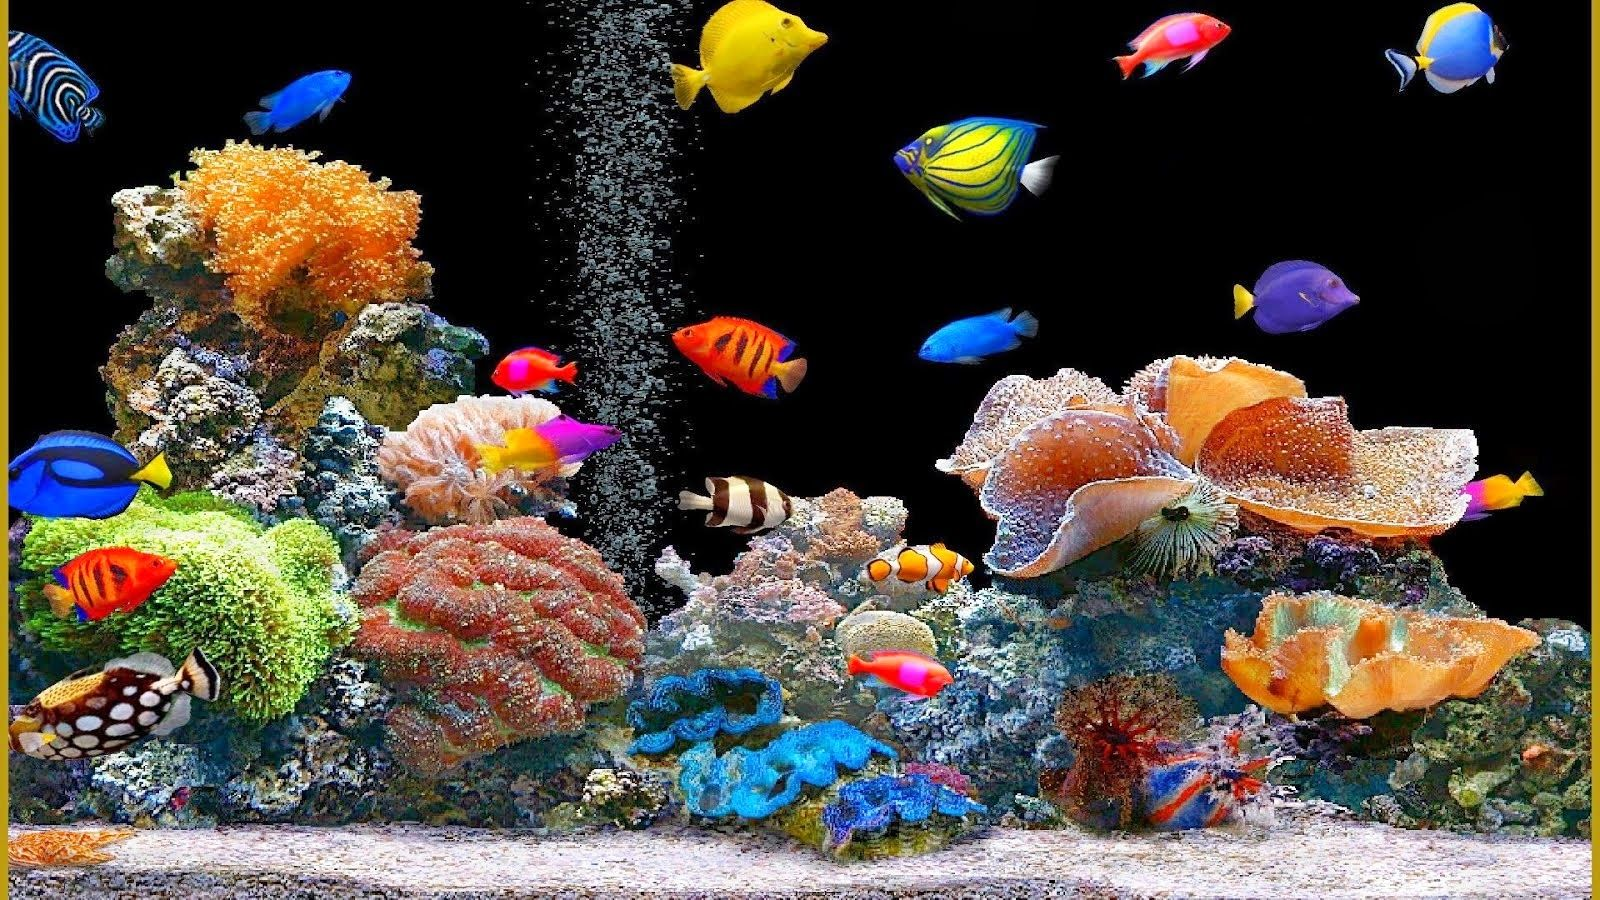 Animated Fish Tank Wallpaper Fish Wallpaper Aquarium Live Wallpaper Saltwater Fish Tanks